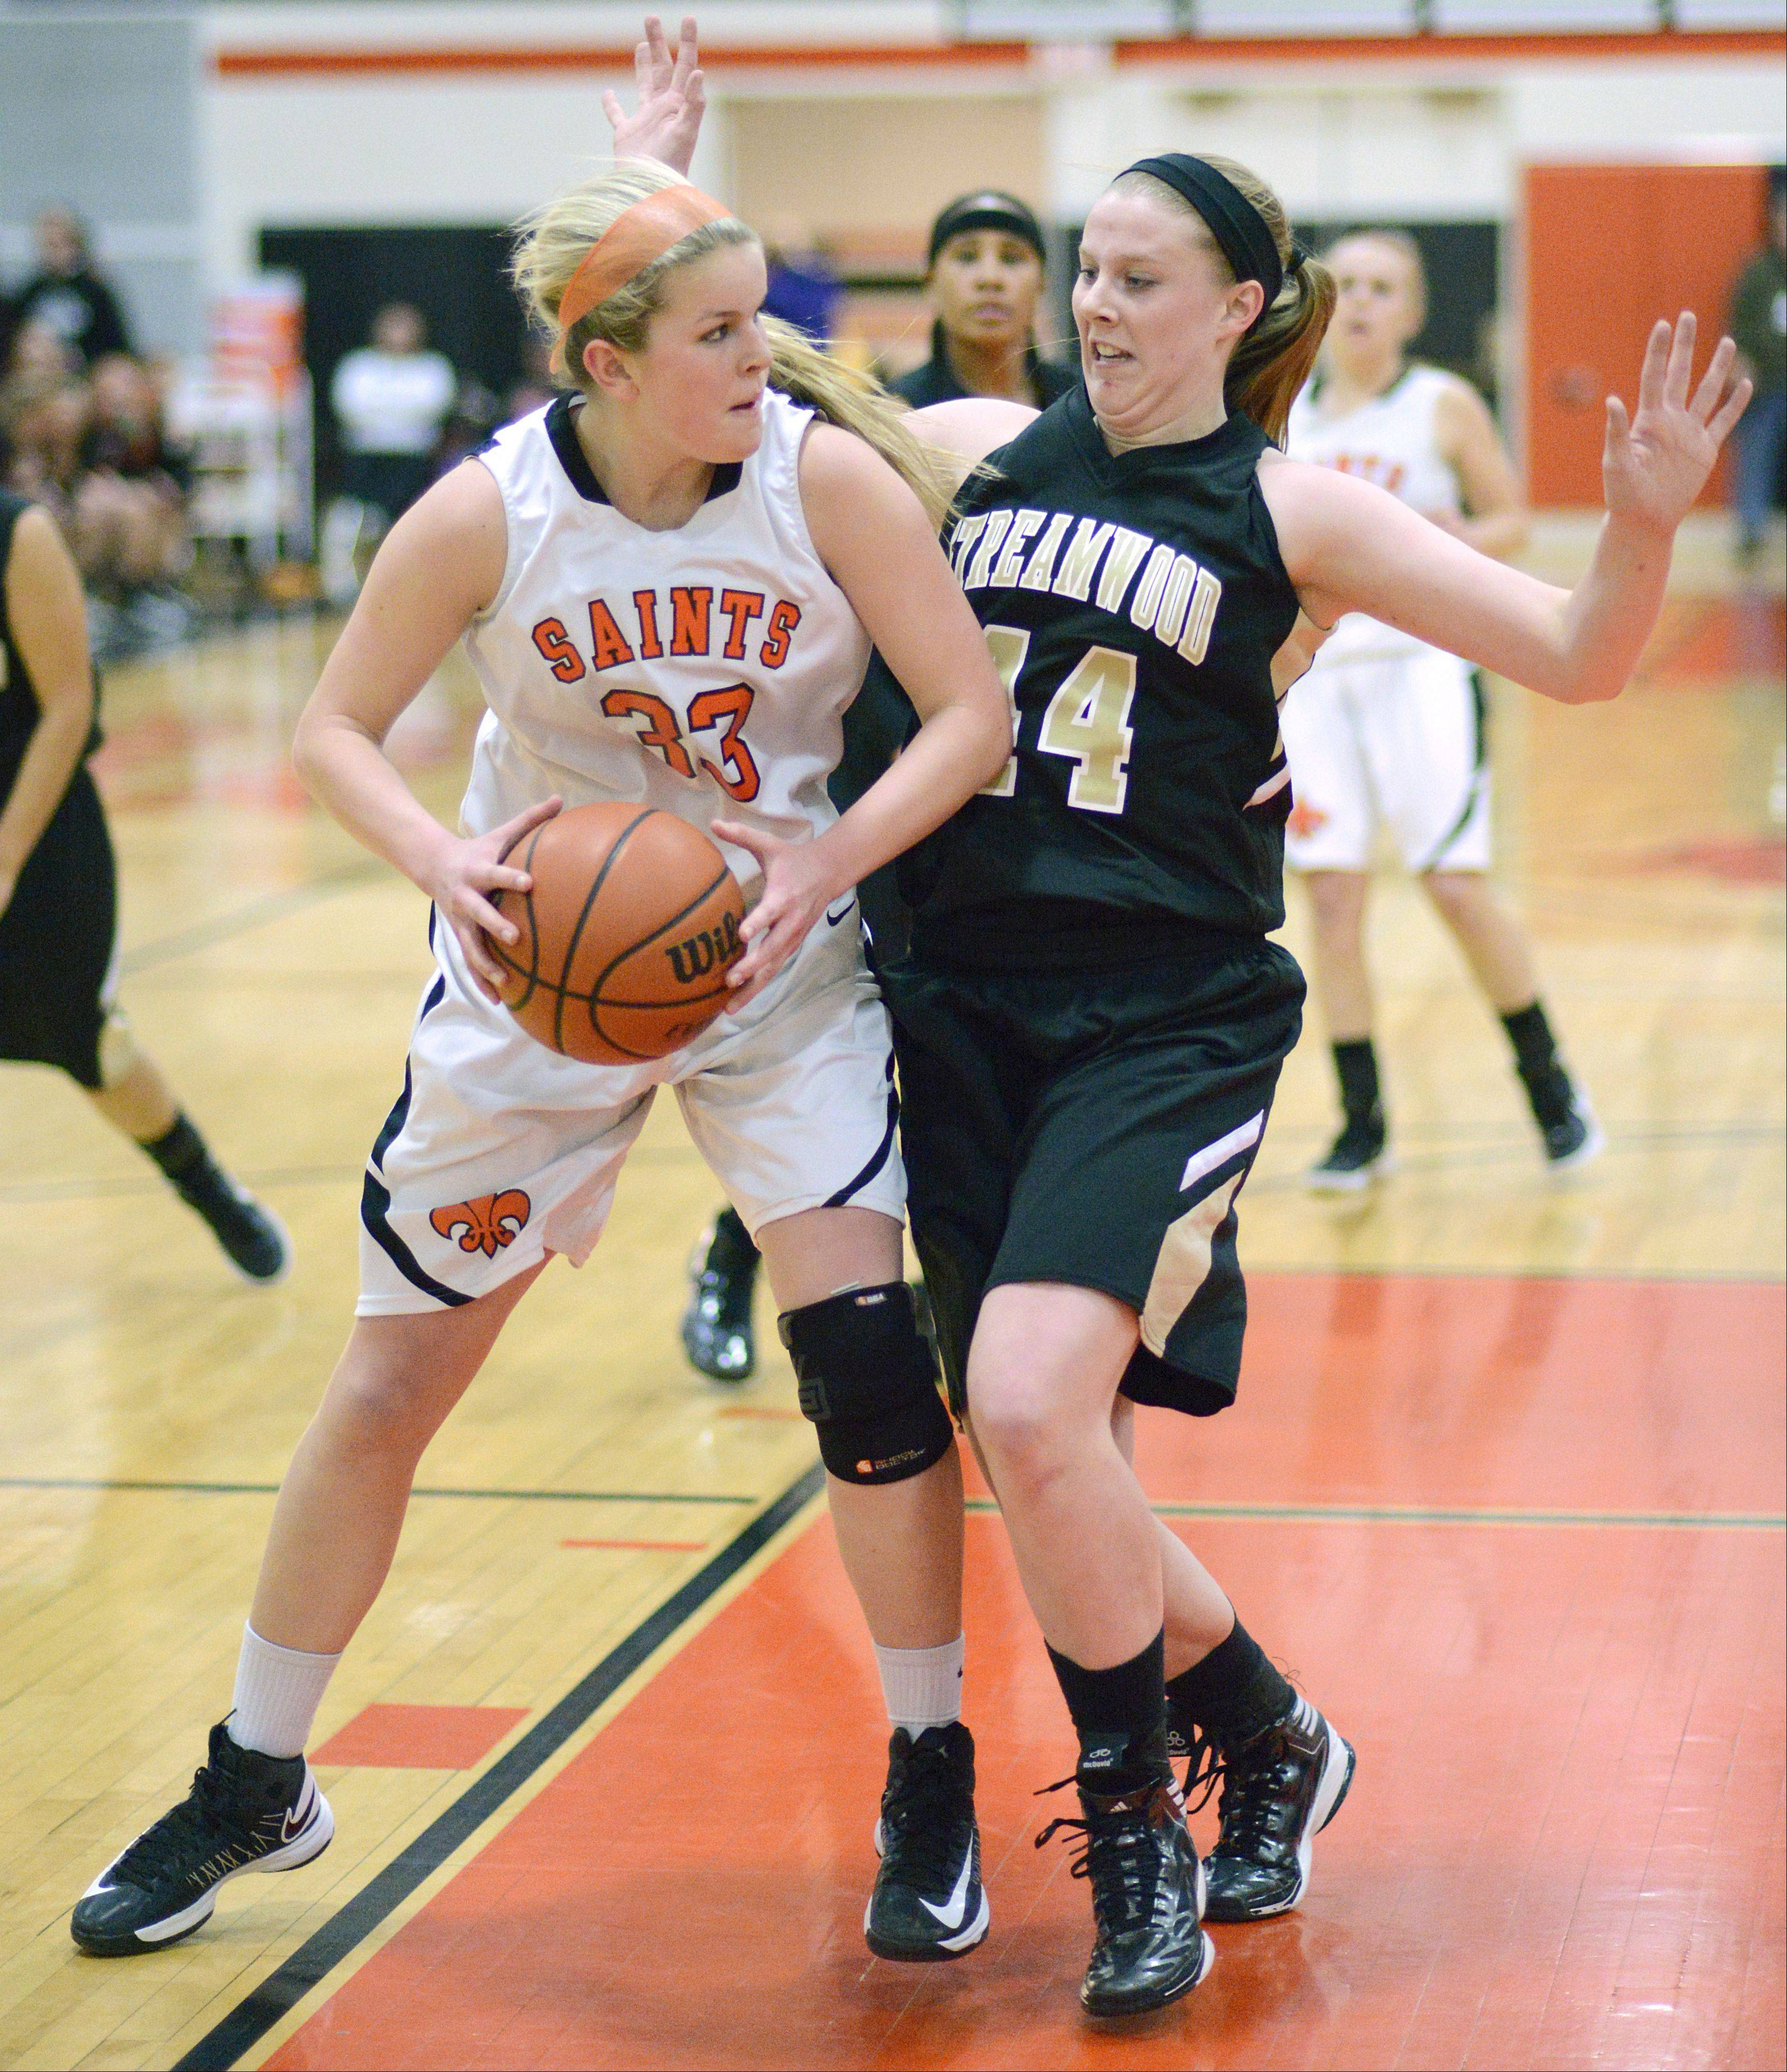 Streamwood's Hannah McGlone attempts to block a pass by St. Charles East's Hannah Nowling in the first quarter on Tuesday, January 22.